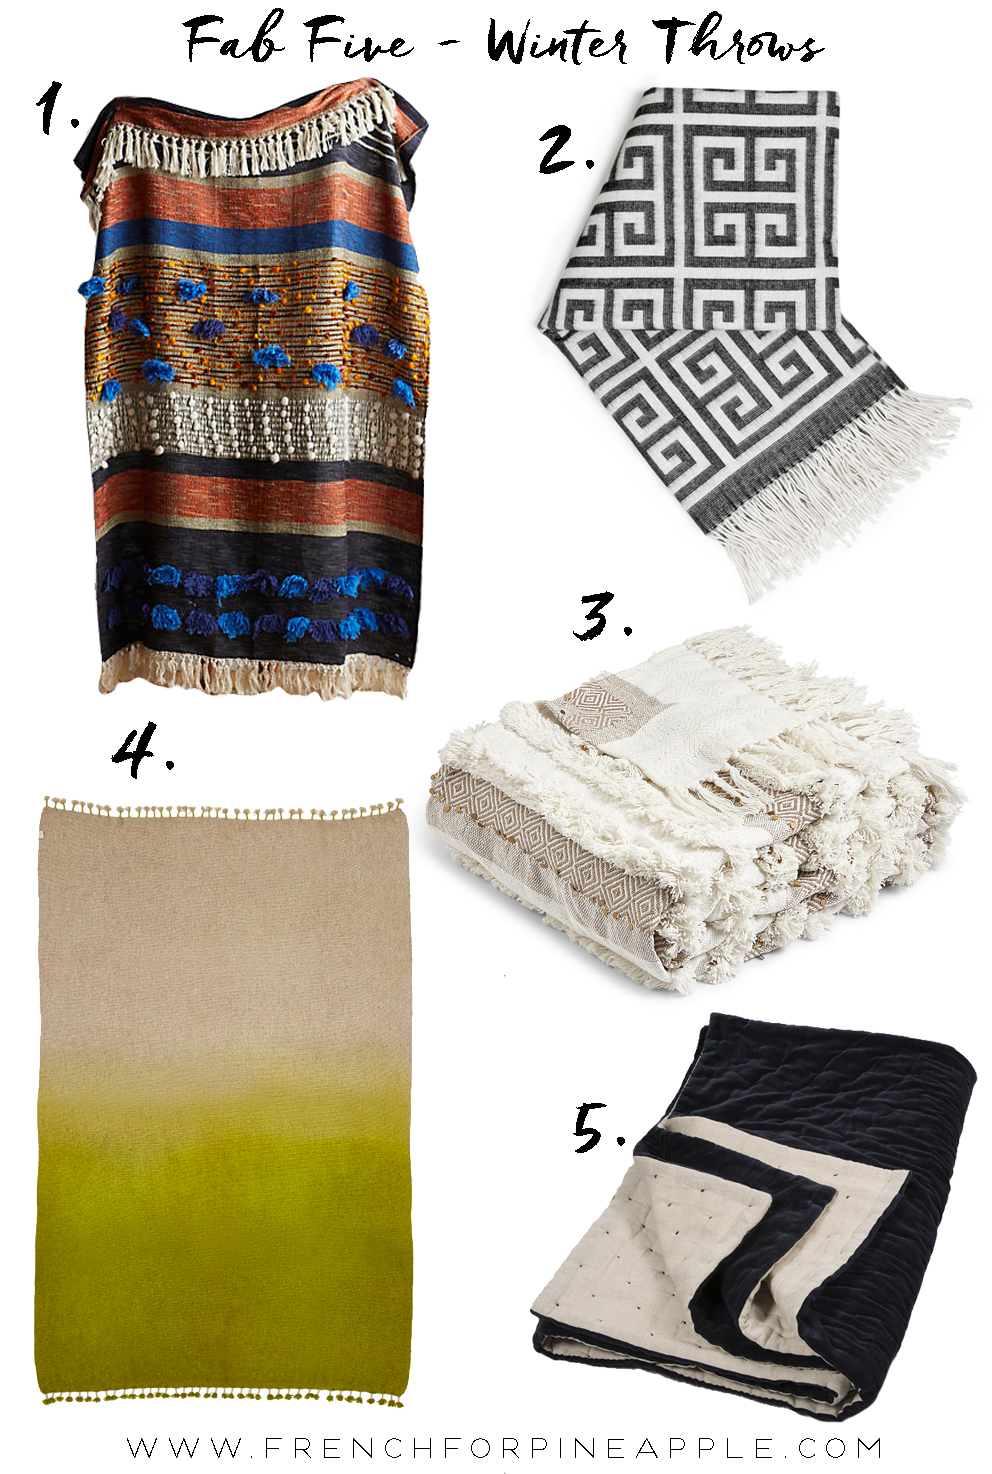 Fab Five Winter Throws - French For Pineapple Blog